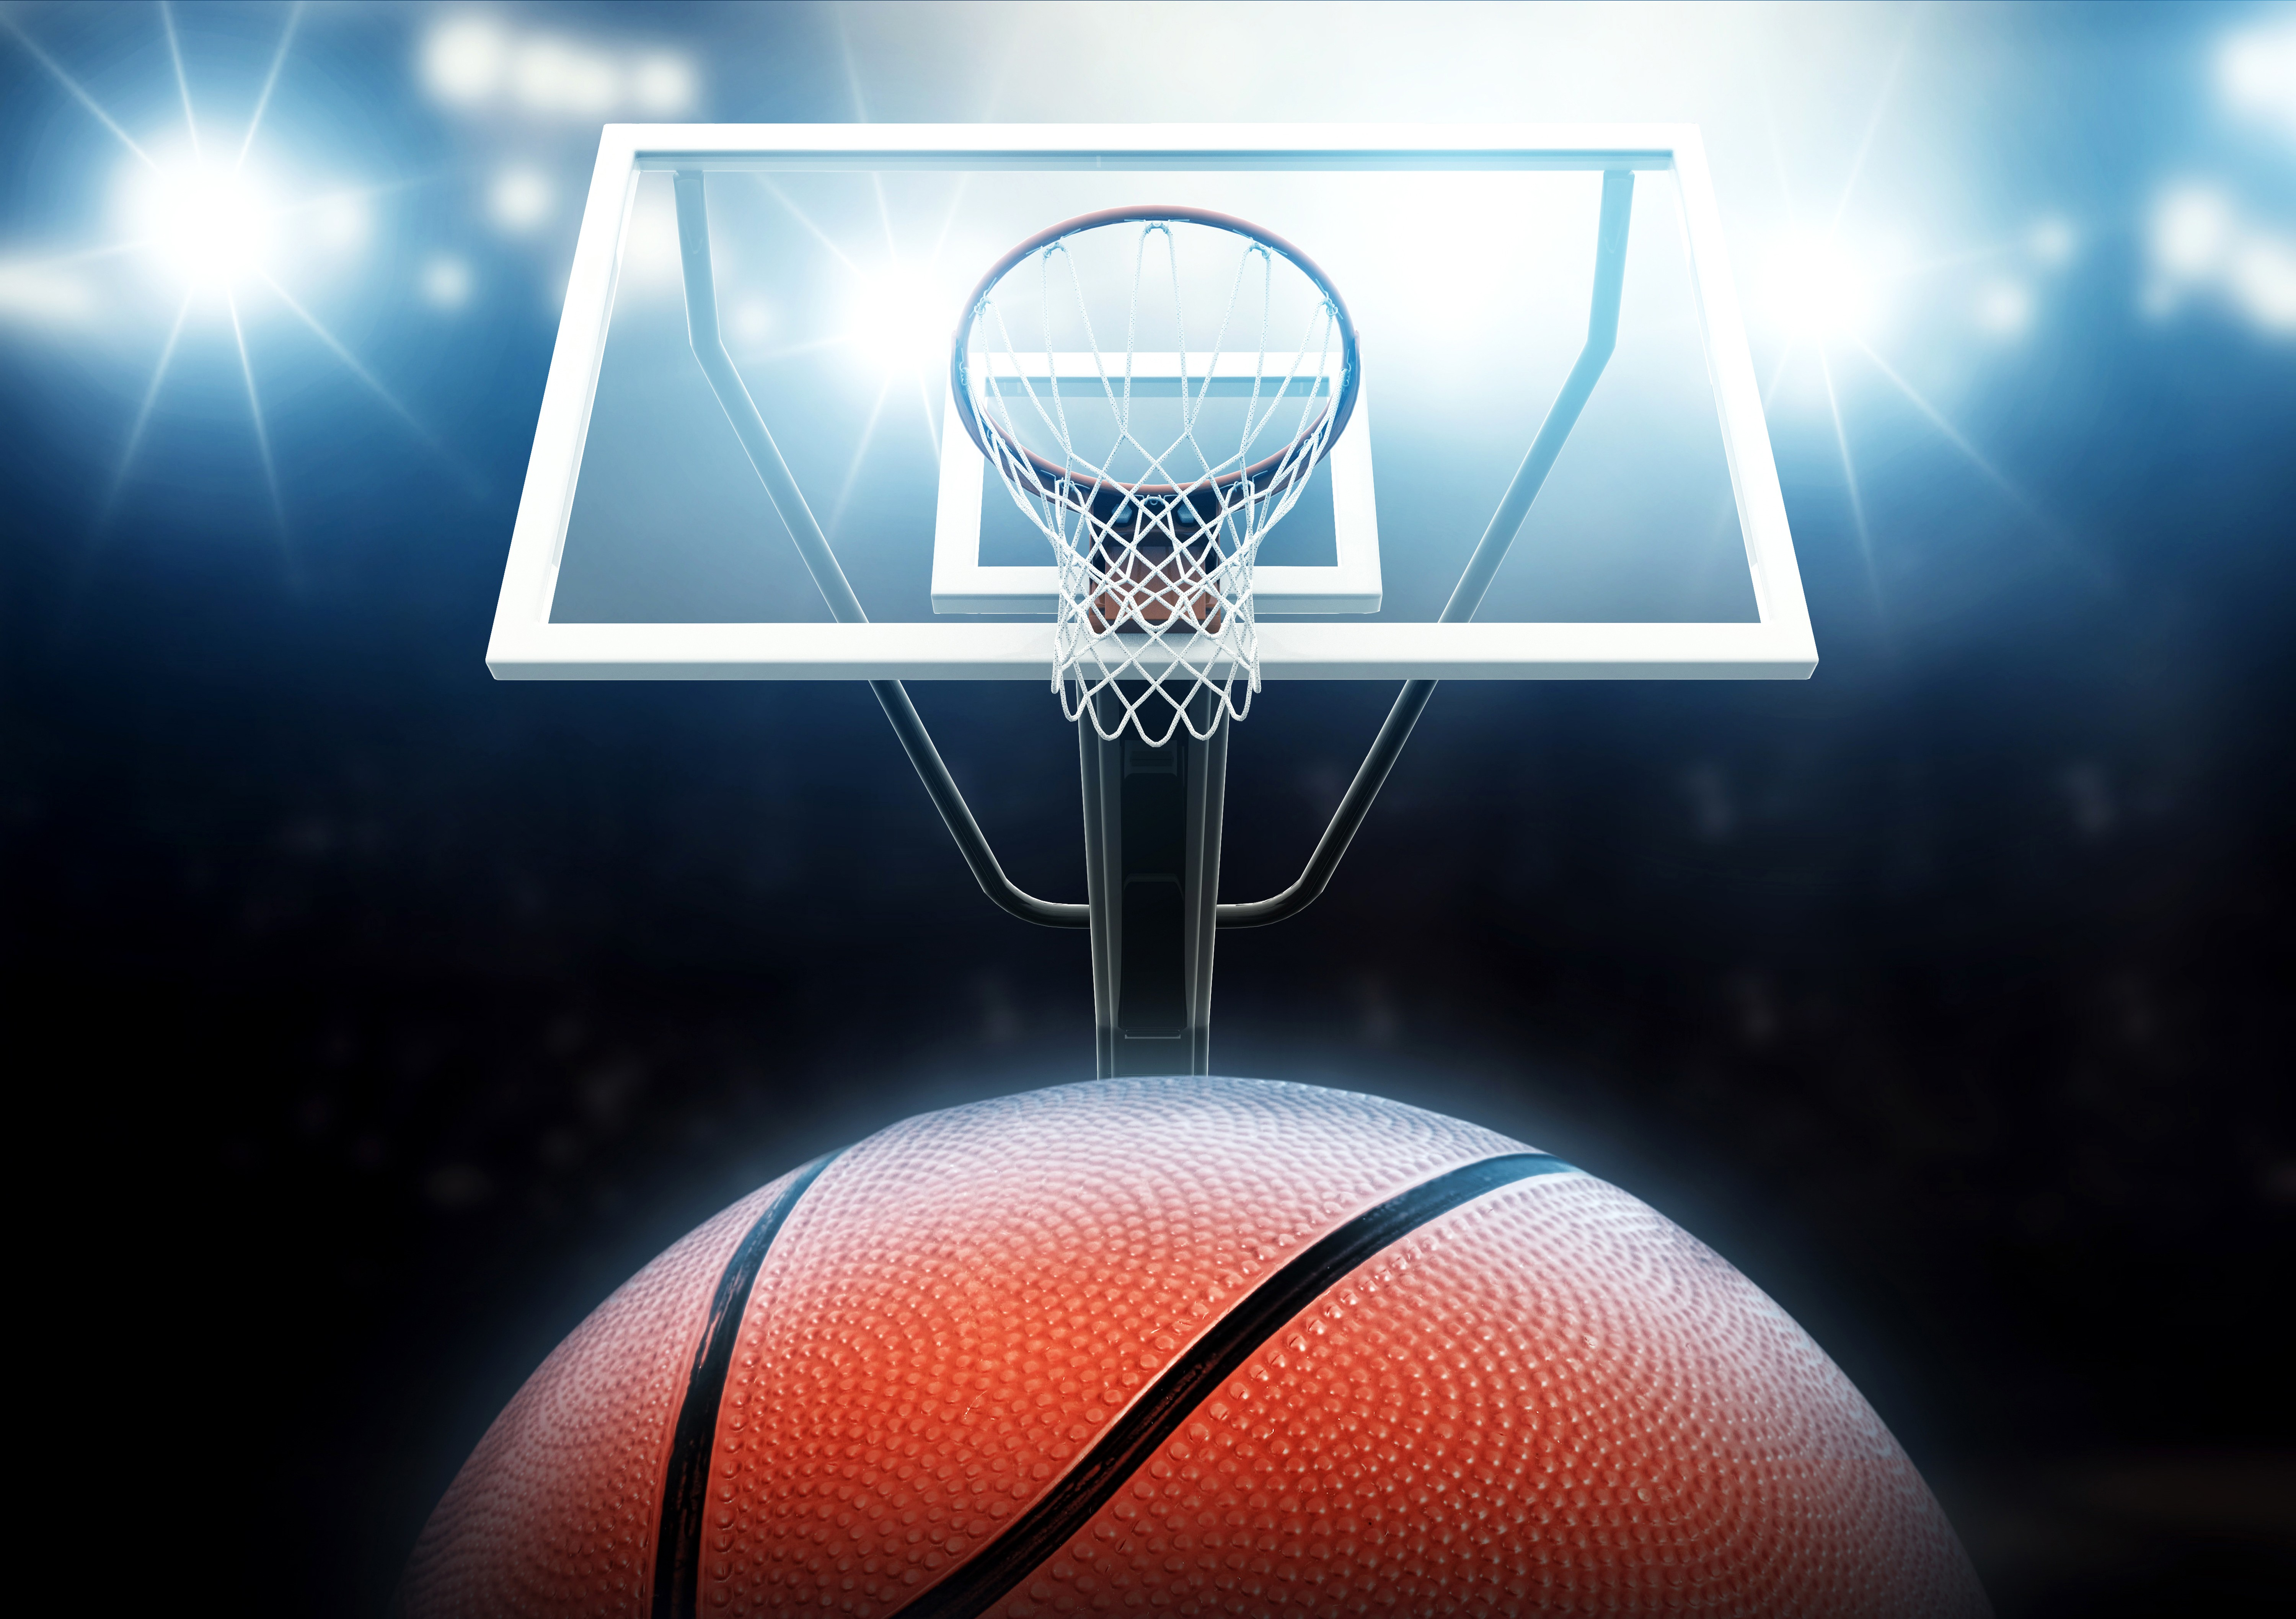 the basket,  the basketball, Wallpaper ball Sport in NBA,